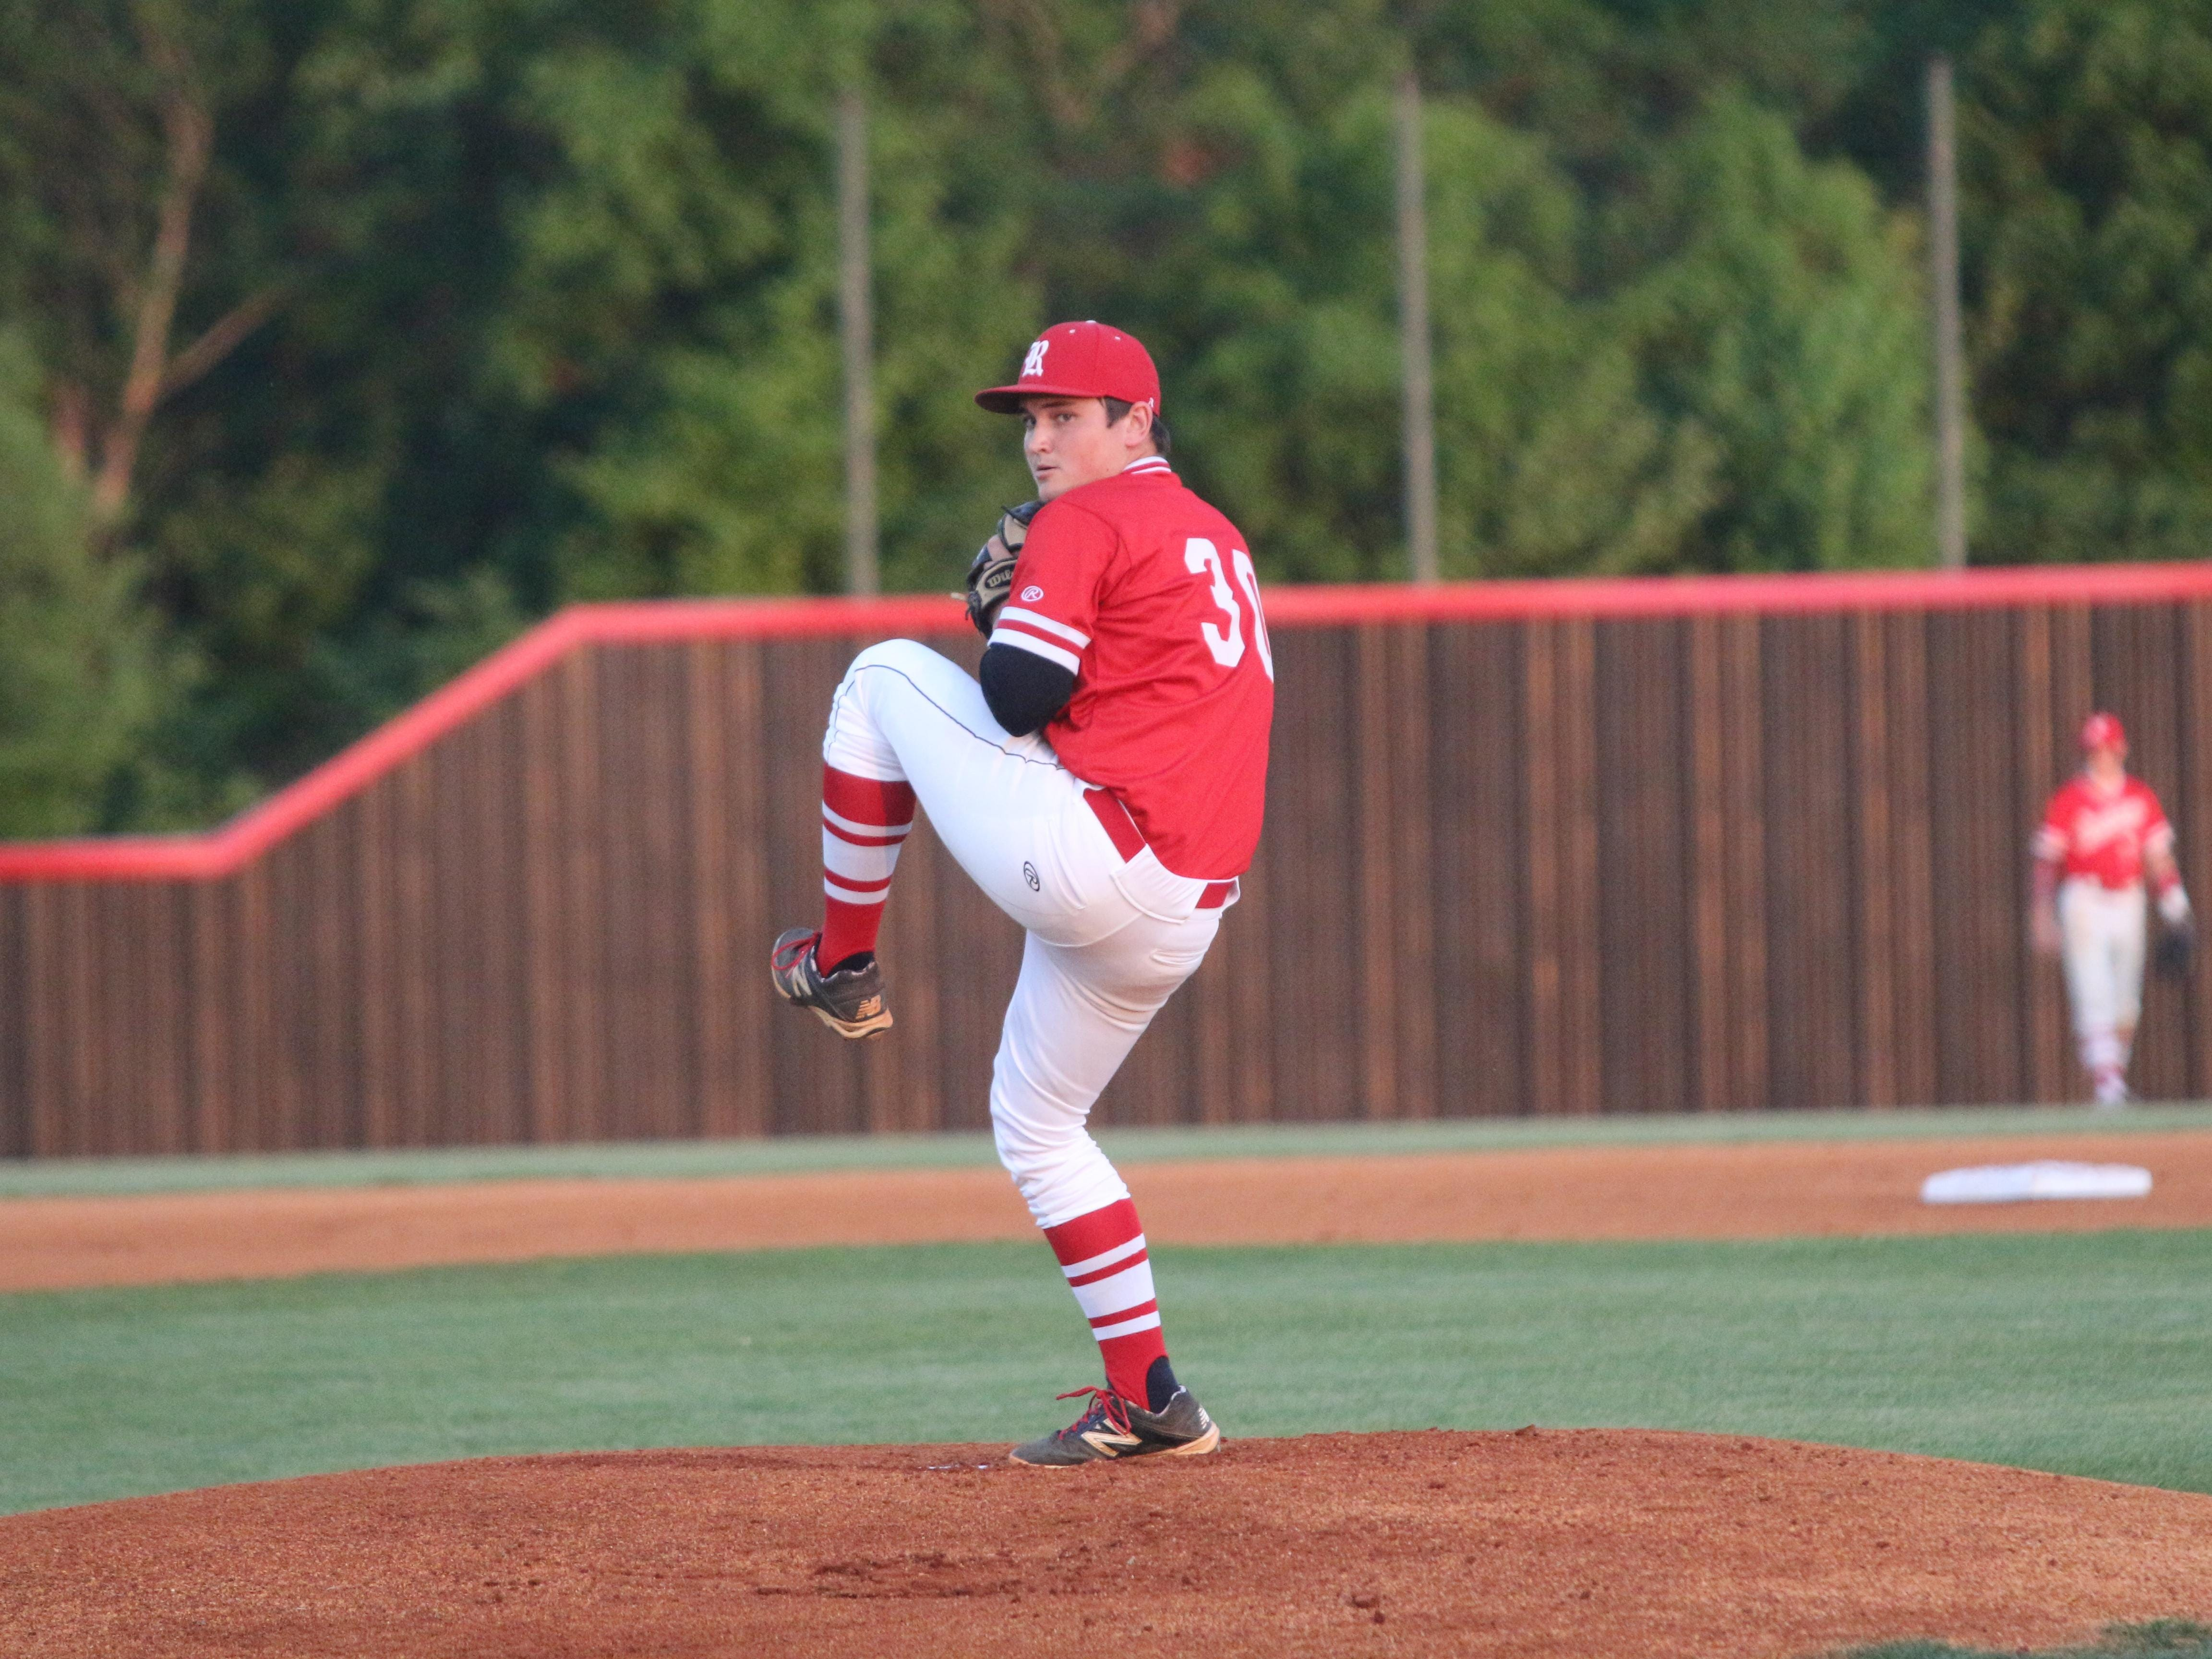 Rossview pitcher Blake Kiely sets to throw a pitch during the District 10 baseball tournament against Springfield two months ago.